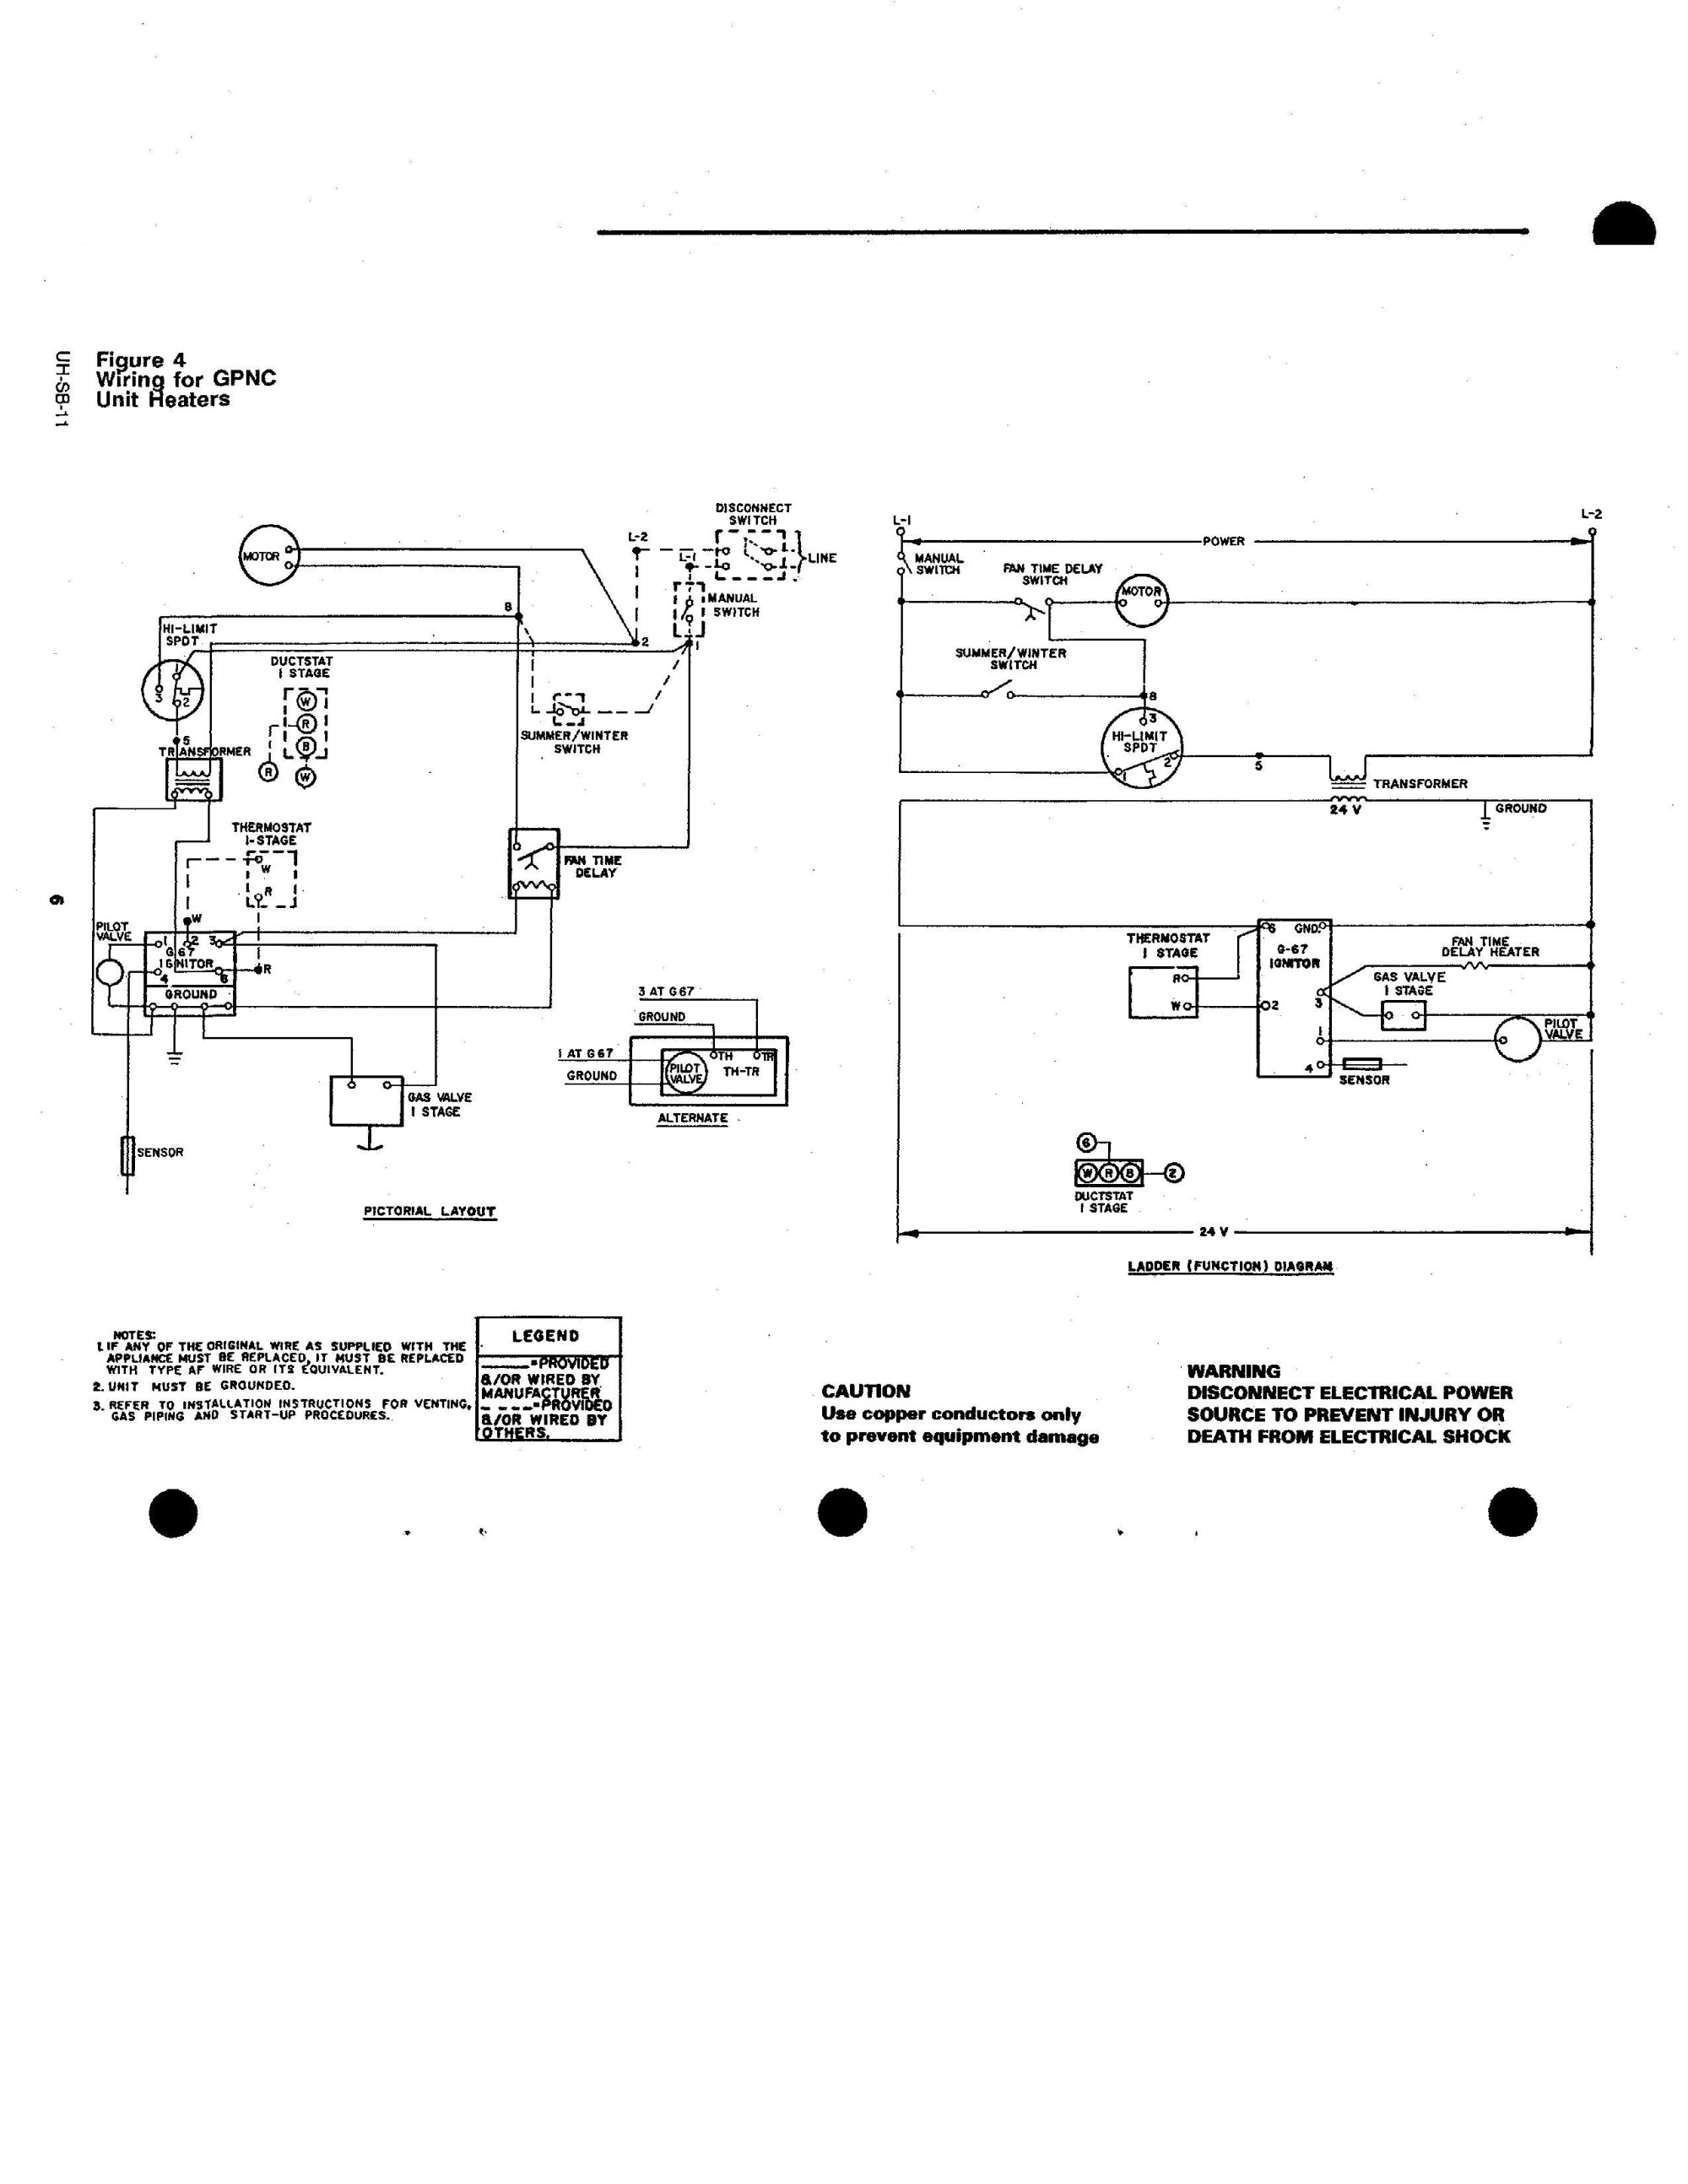 hight resolution of wiring diagram trane xe1000 2014 01 15 gpnc pg6 at trane wiring